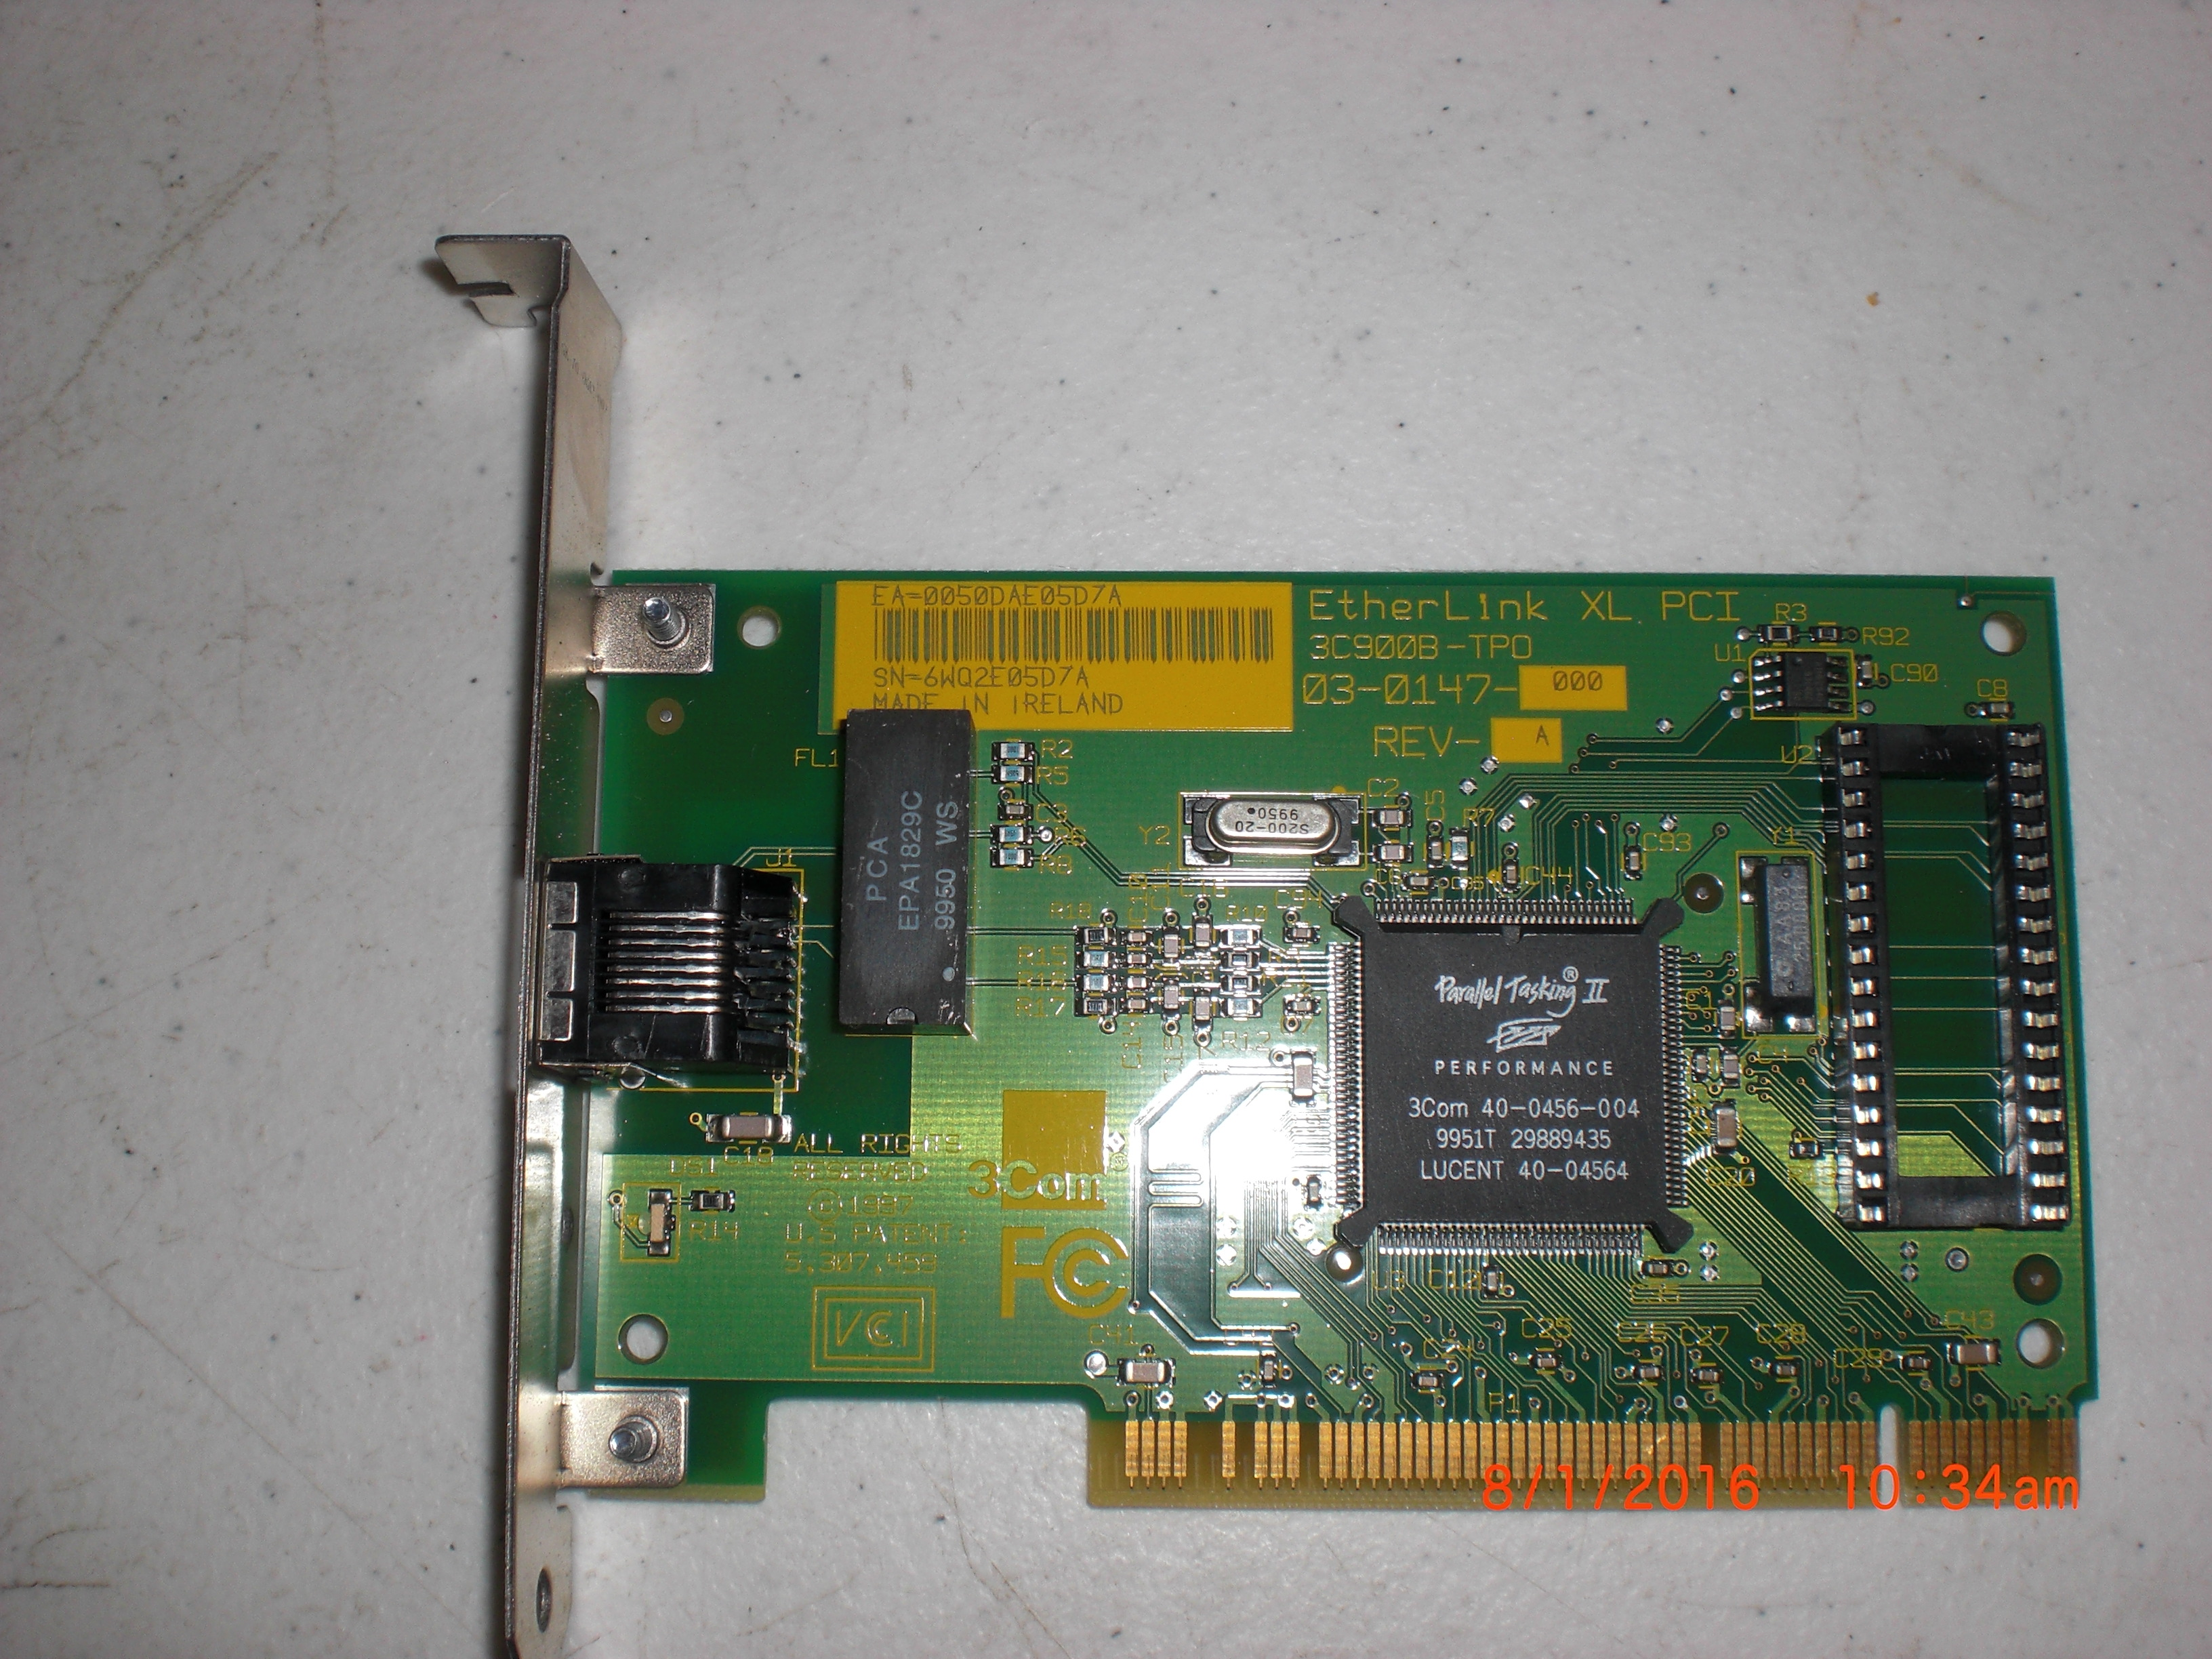 PCB 3COM 03-0147-000 PCB EitherLink XL PCI 3C9008-TPO